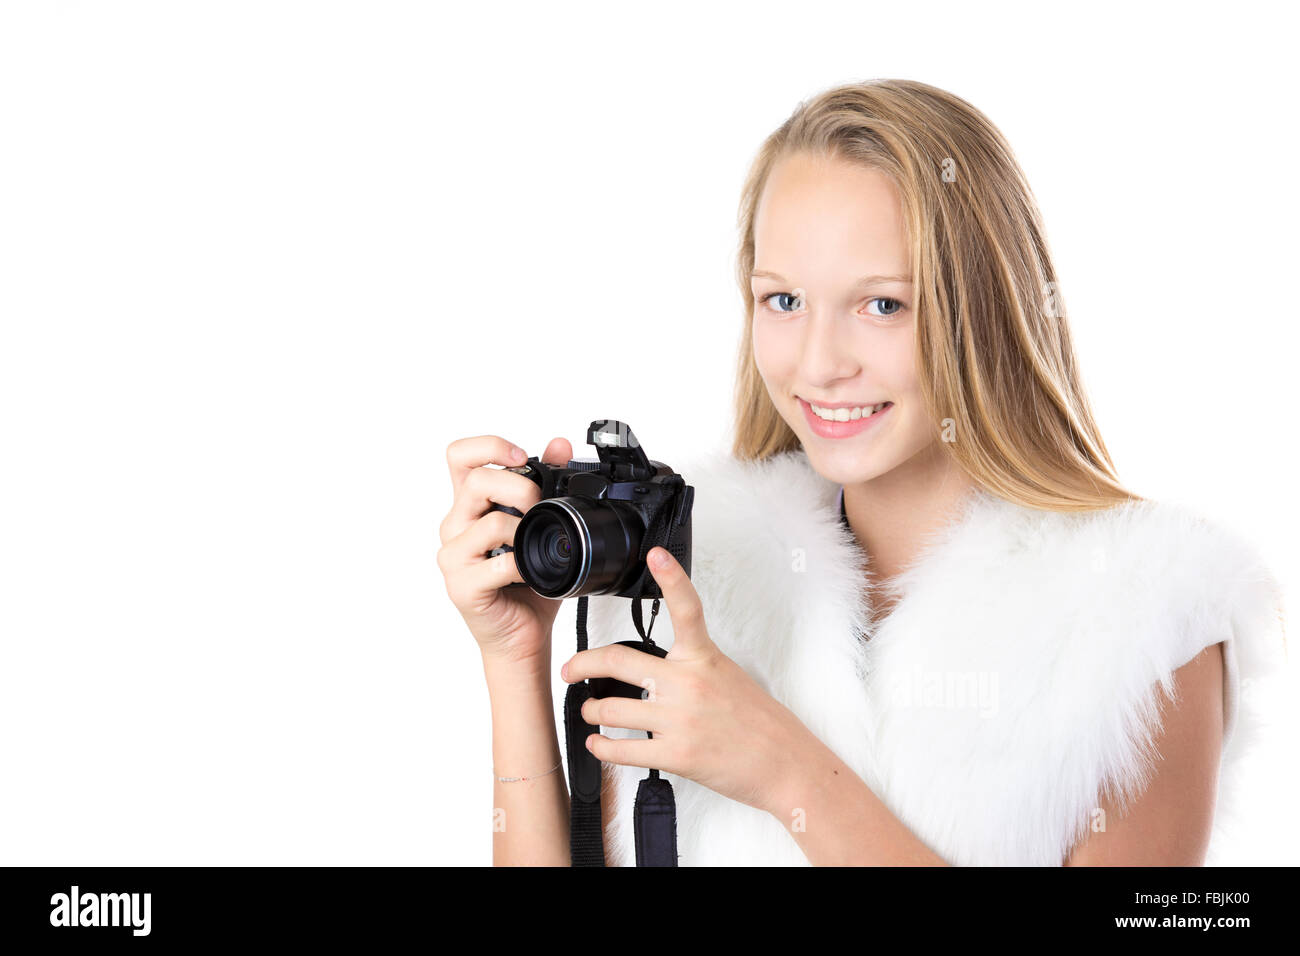 portrait of happy cute beautiful blond photographer wearing